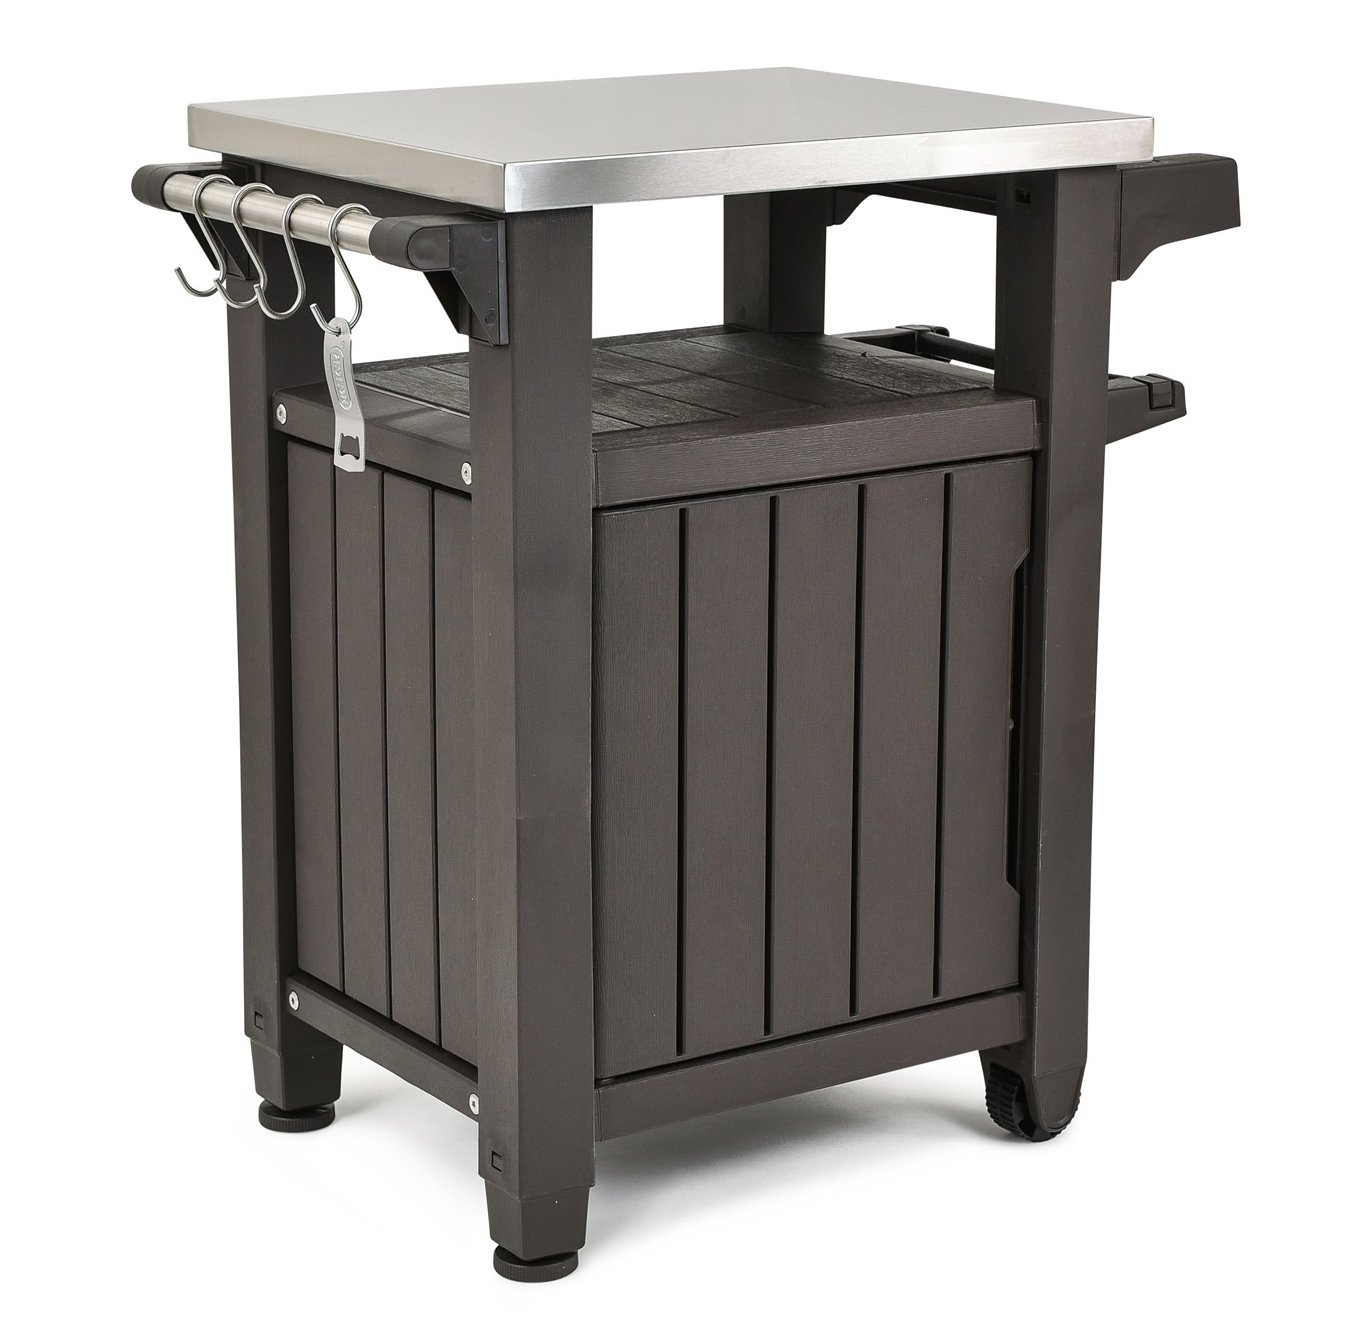 Keter Unity Indoor Outdoor BBQ Entertainment Storage Table/Prep Station with Metal Top 228833